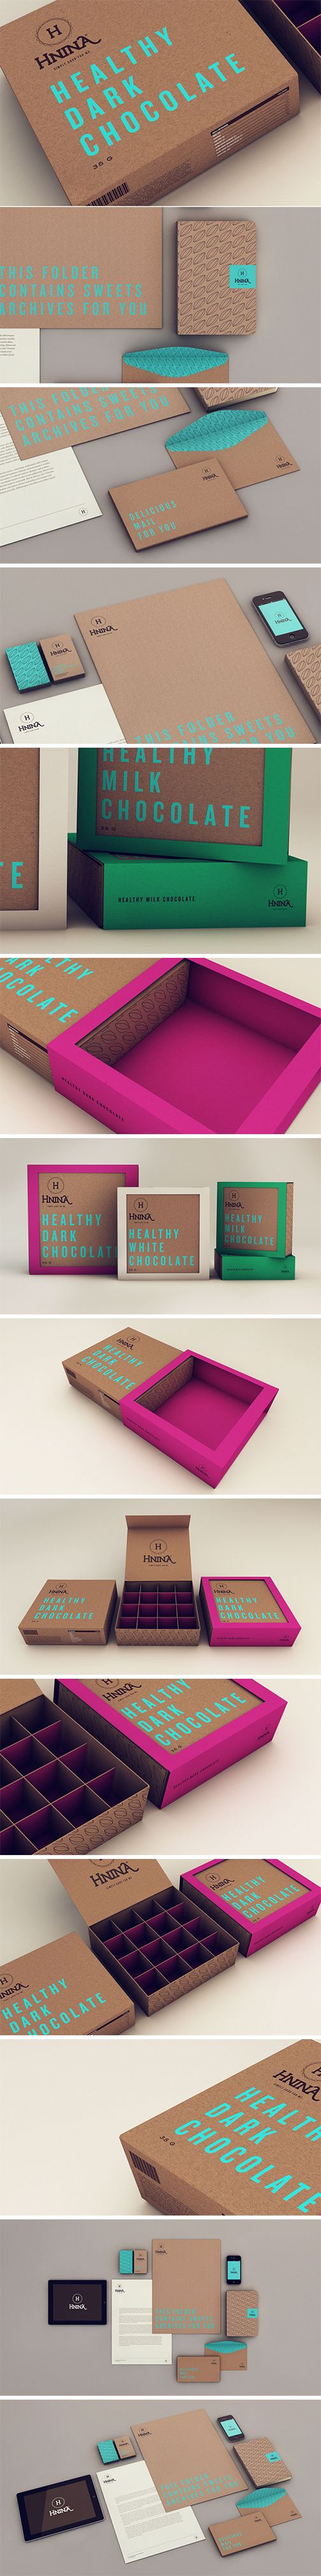 Chocolate branding - beautiful.